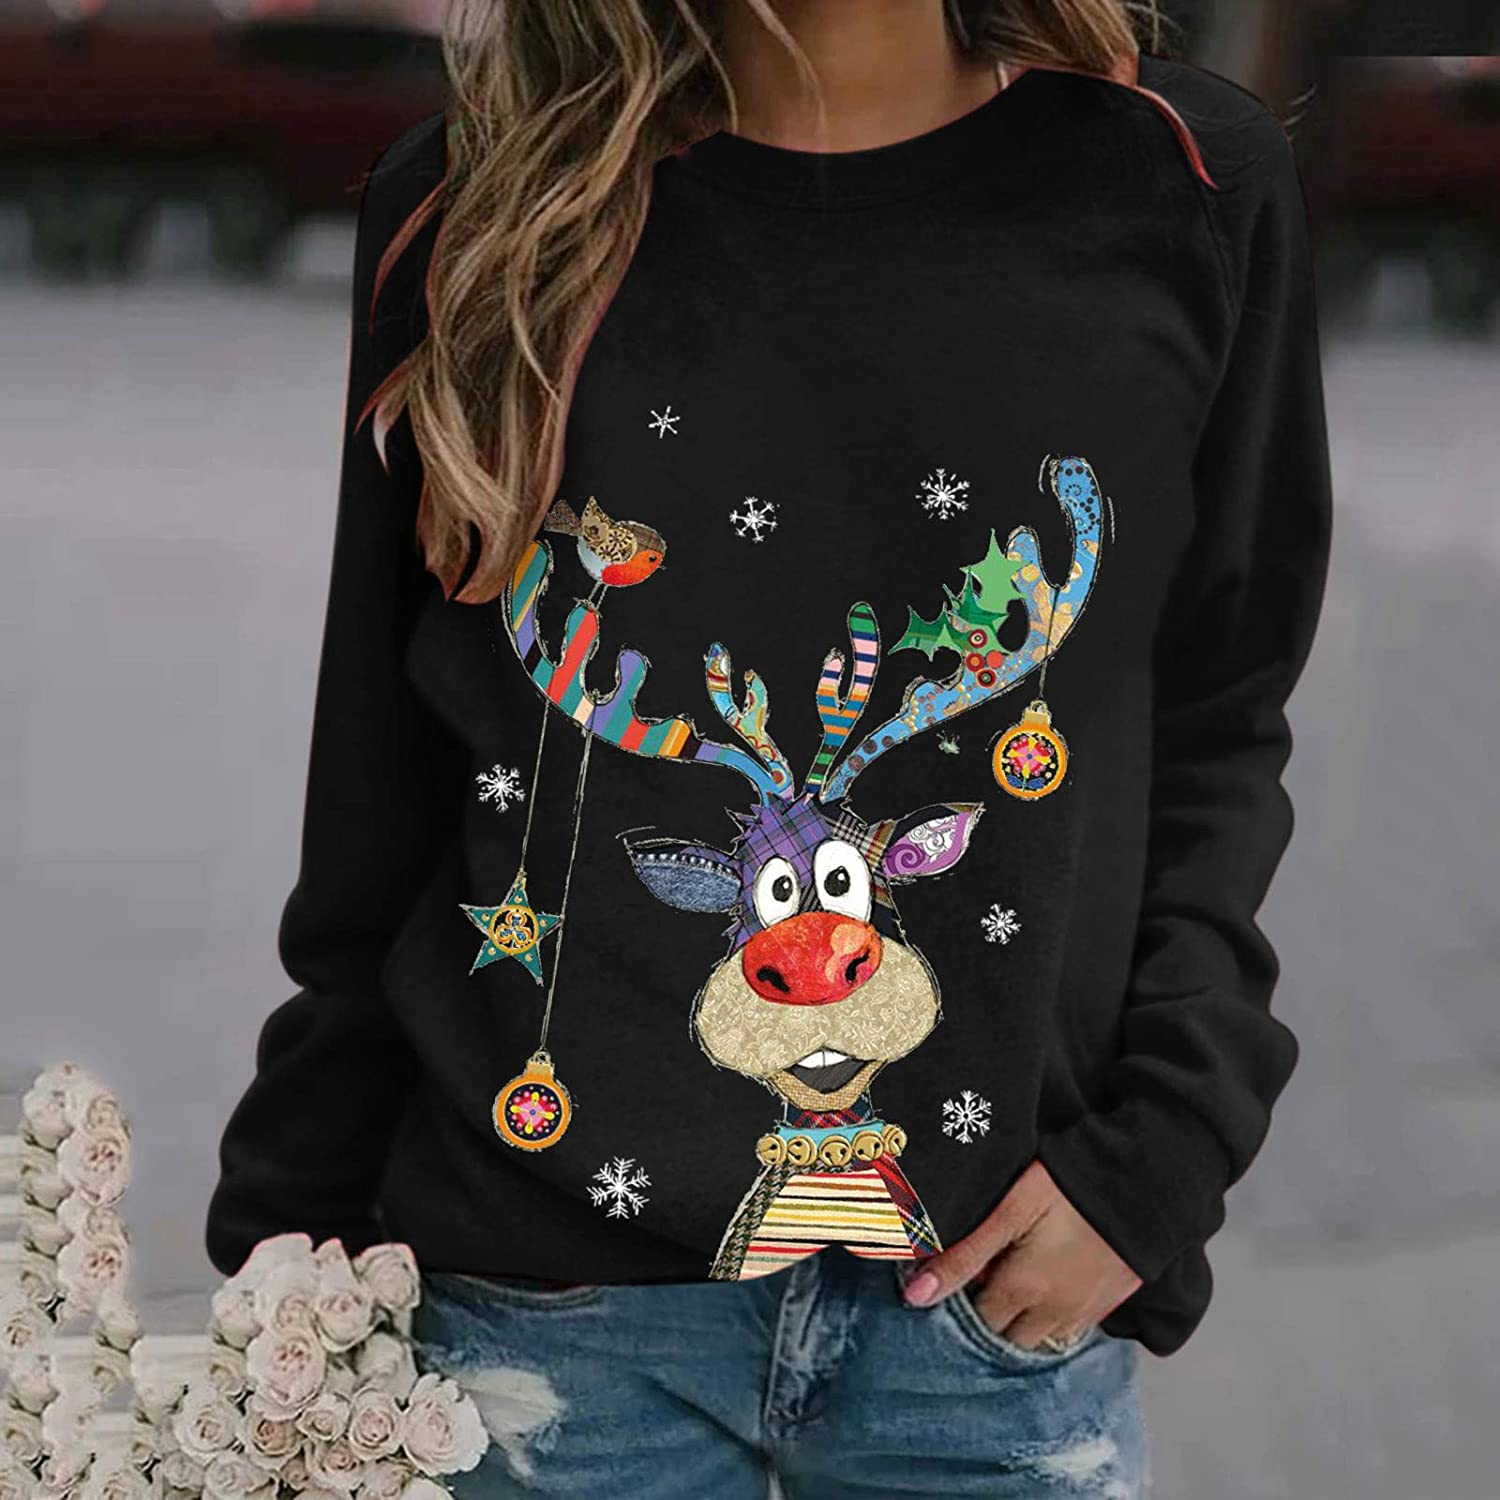 Dylanlla Unisex Ugly Christmas Sweater 3D Printed Funny Crew Neck Pullover Sweatshirts for Xmas Party Celebrations